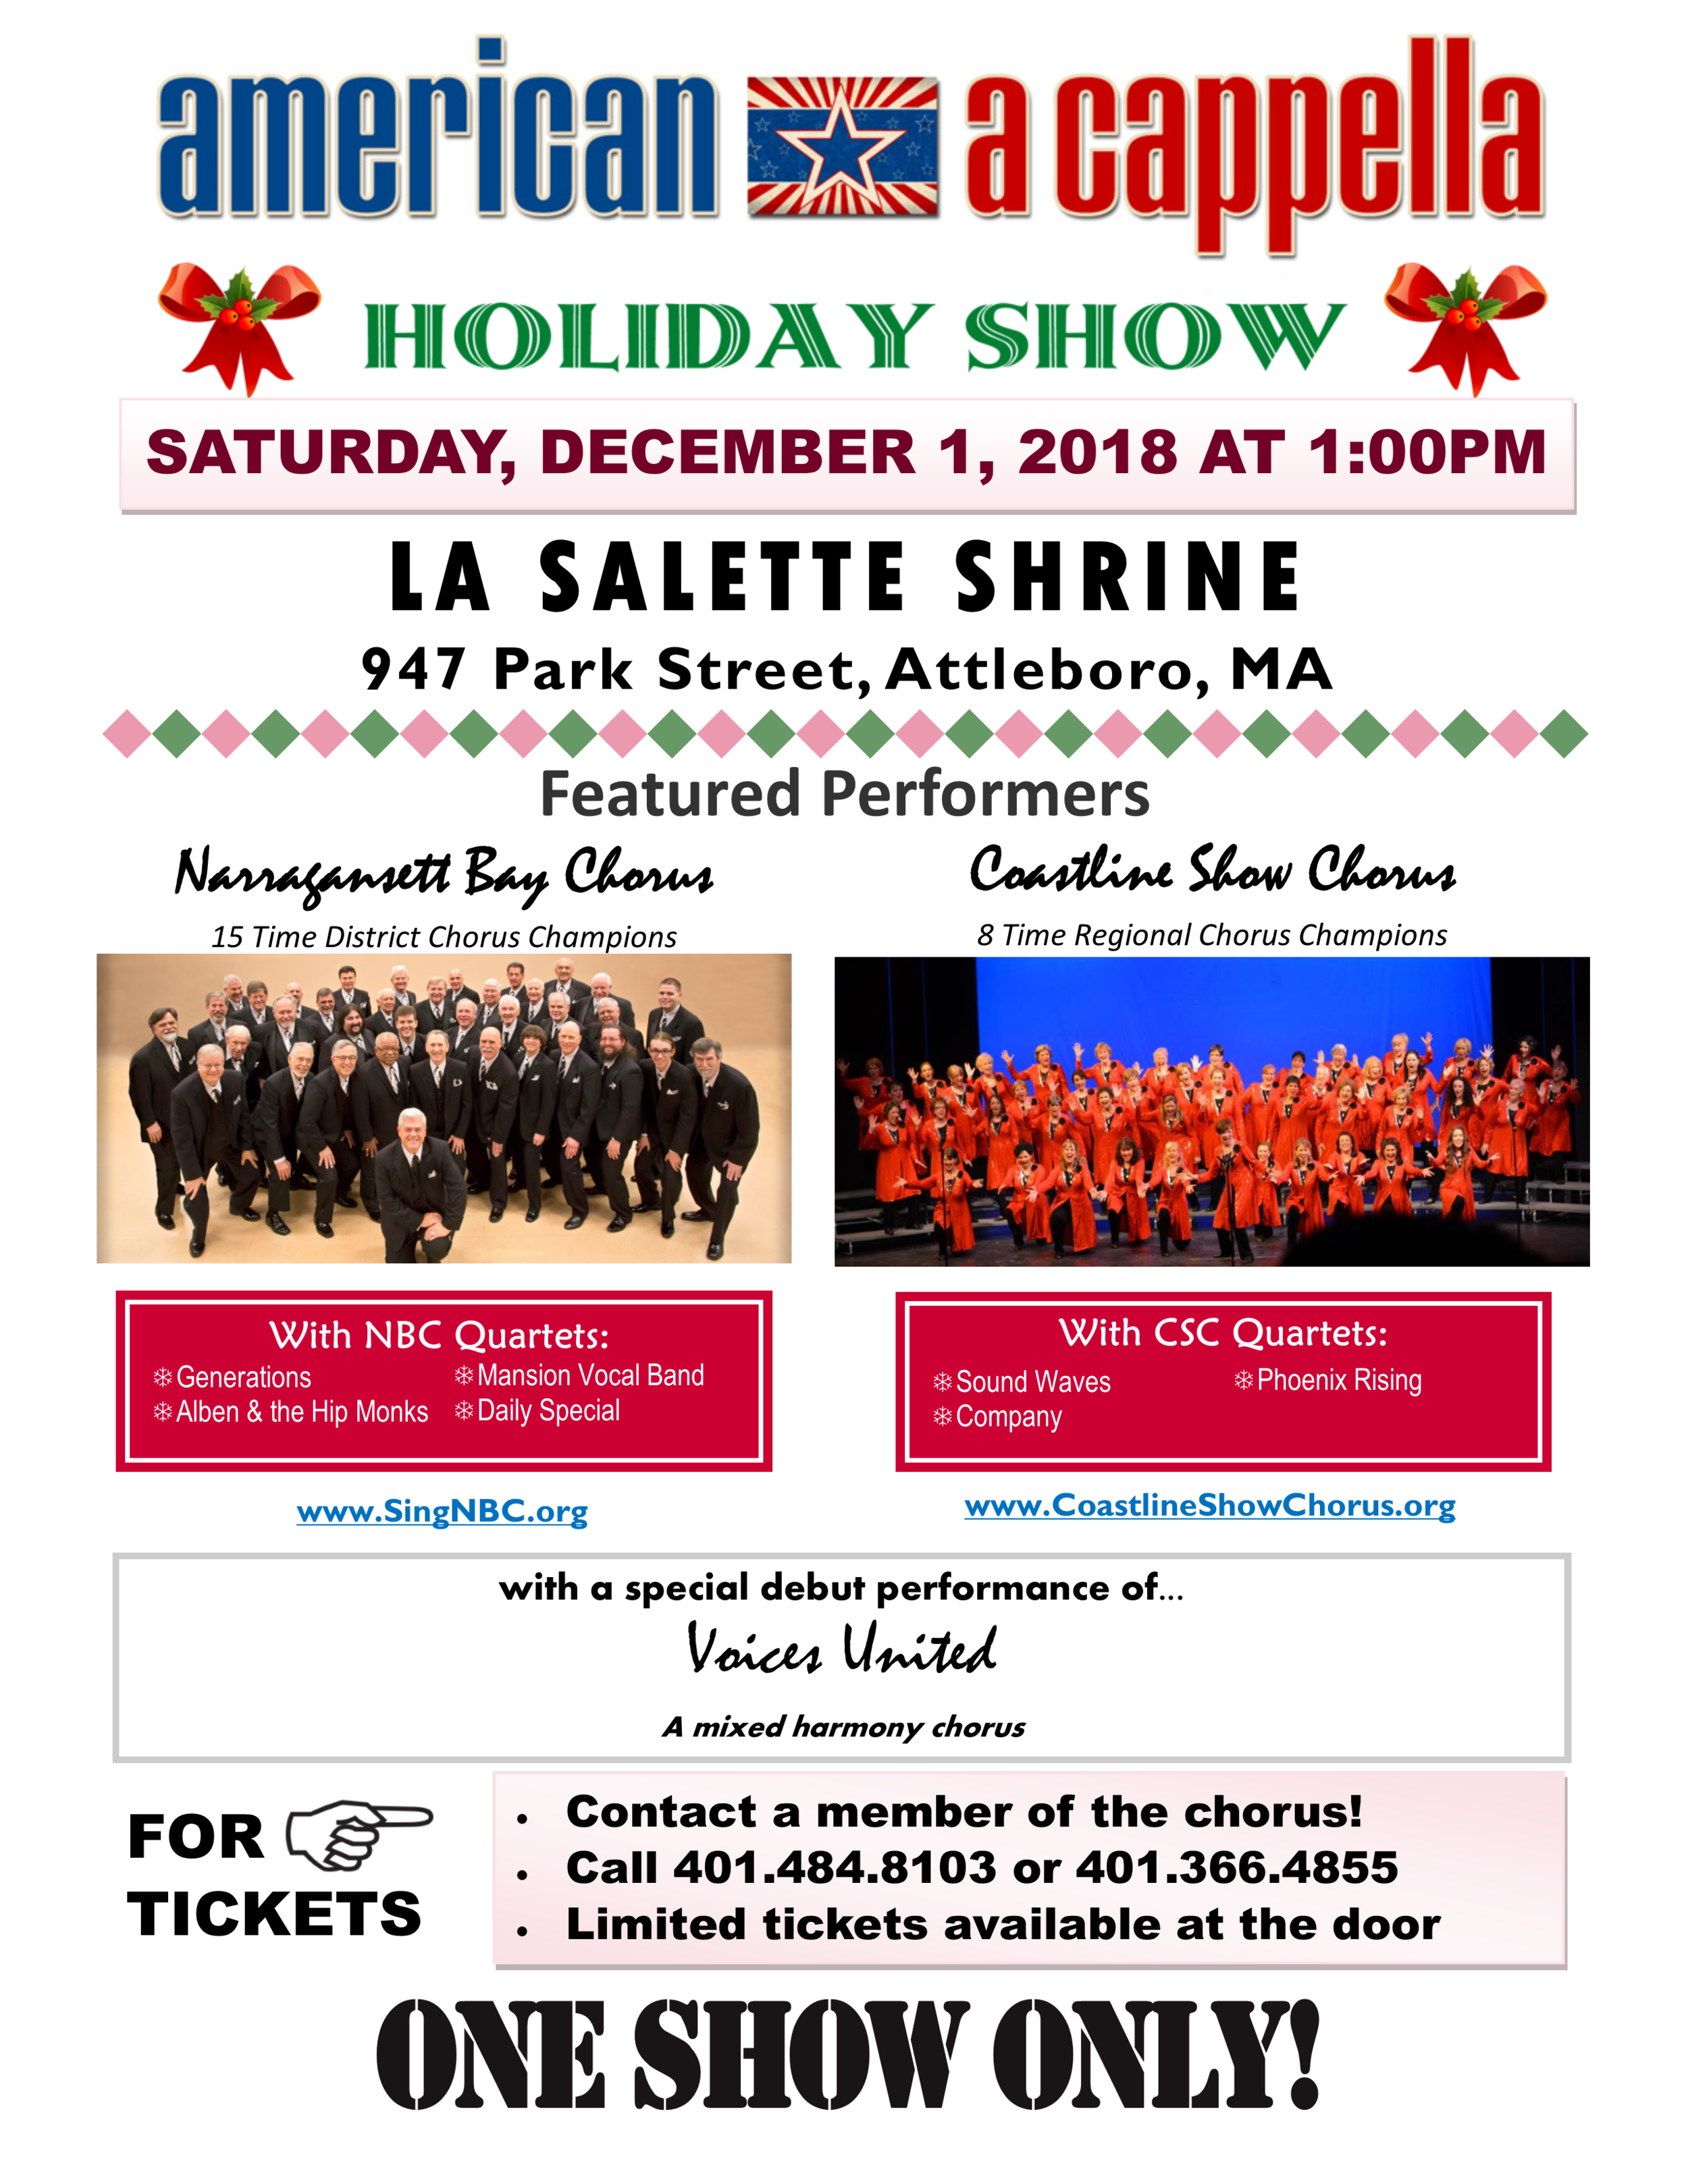 NBC Holiday Show Flyer - December 2018.png